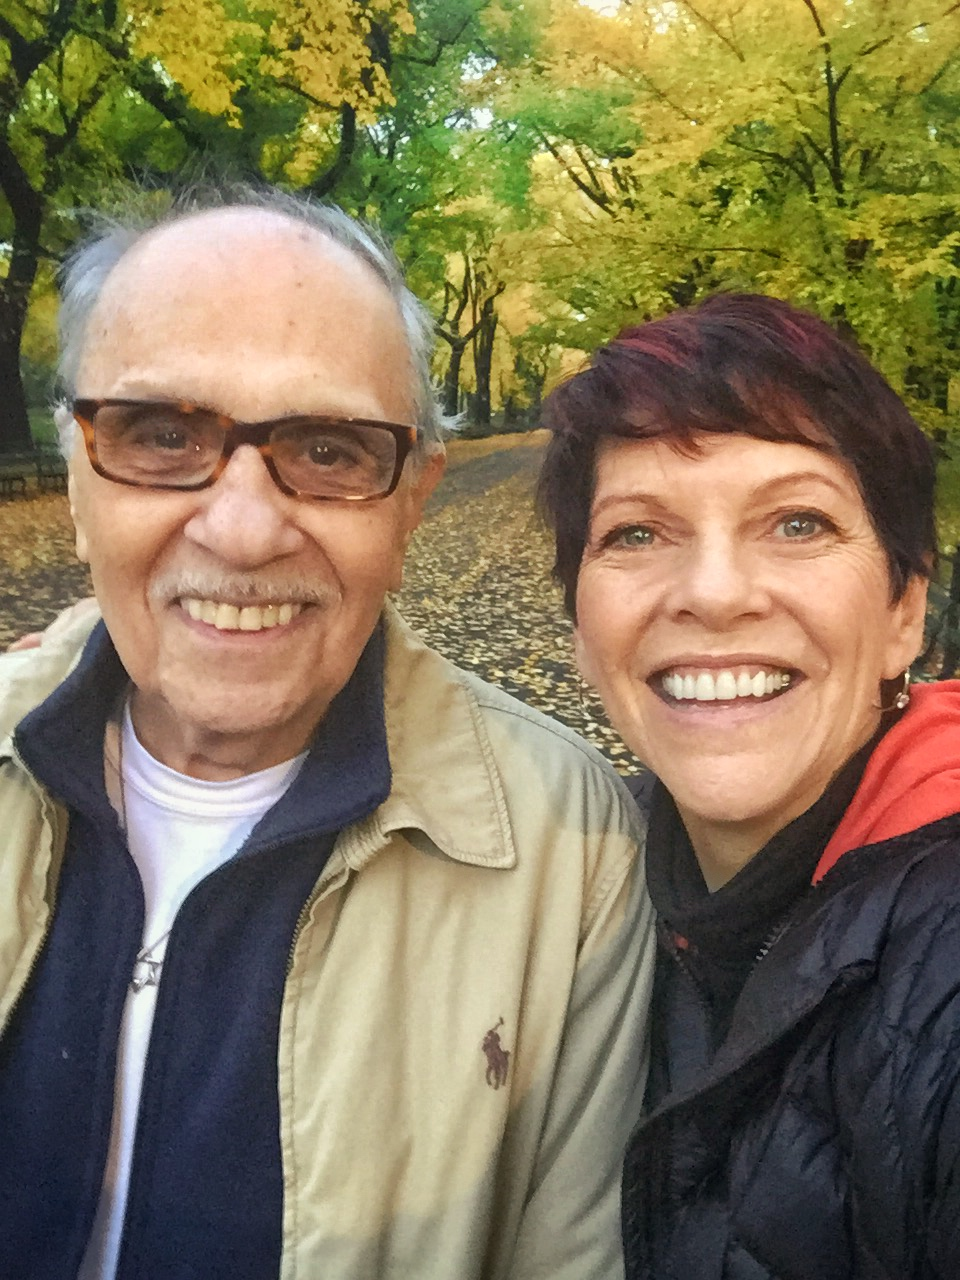 Paul Loeb & Karen Hutton selfie